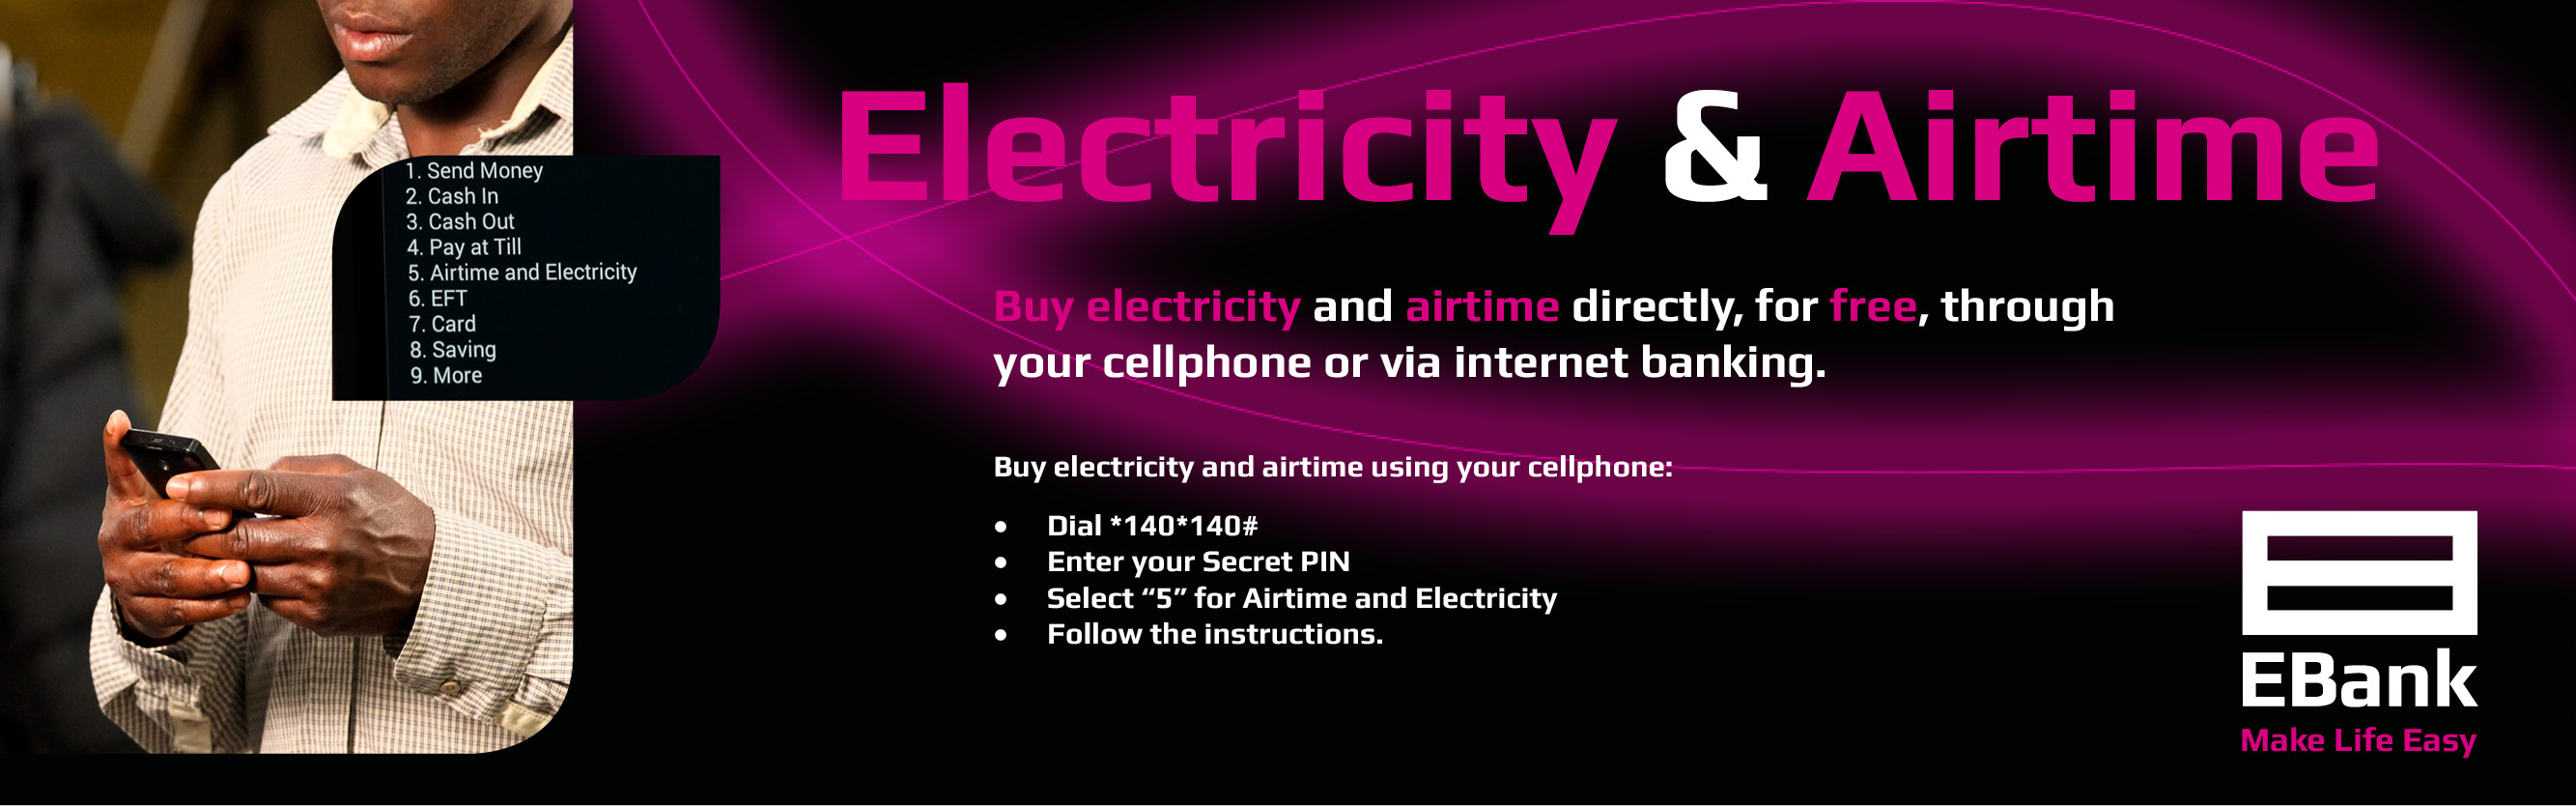 Electricity and Airtime